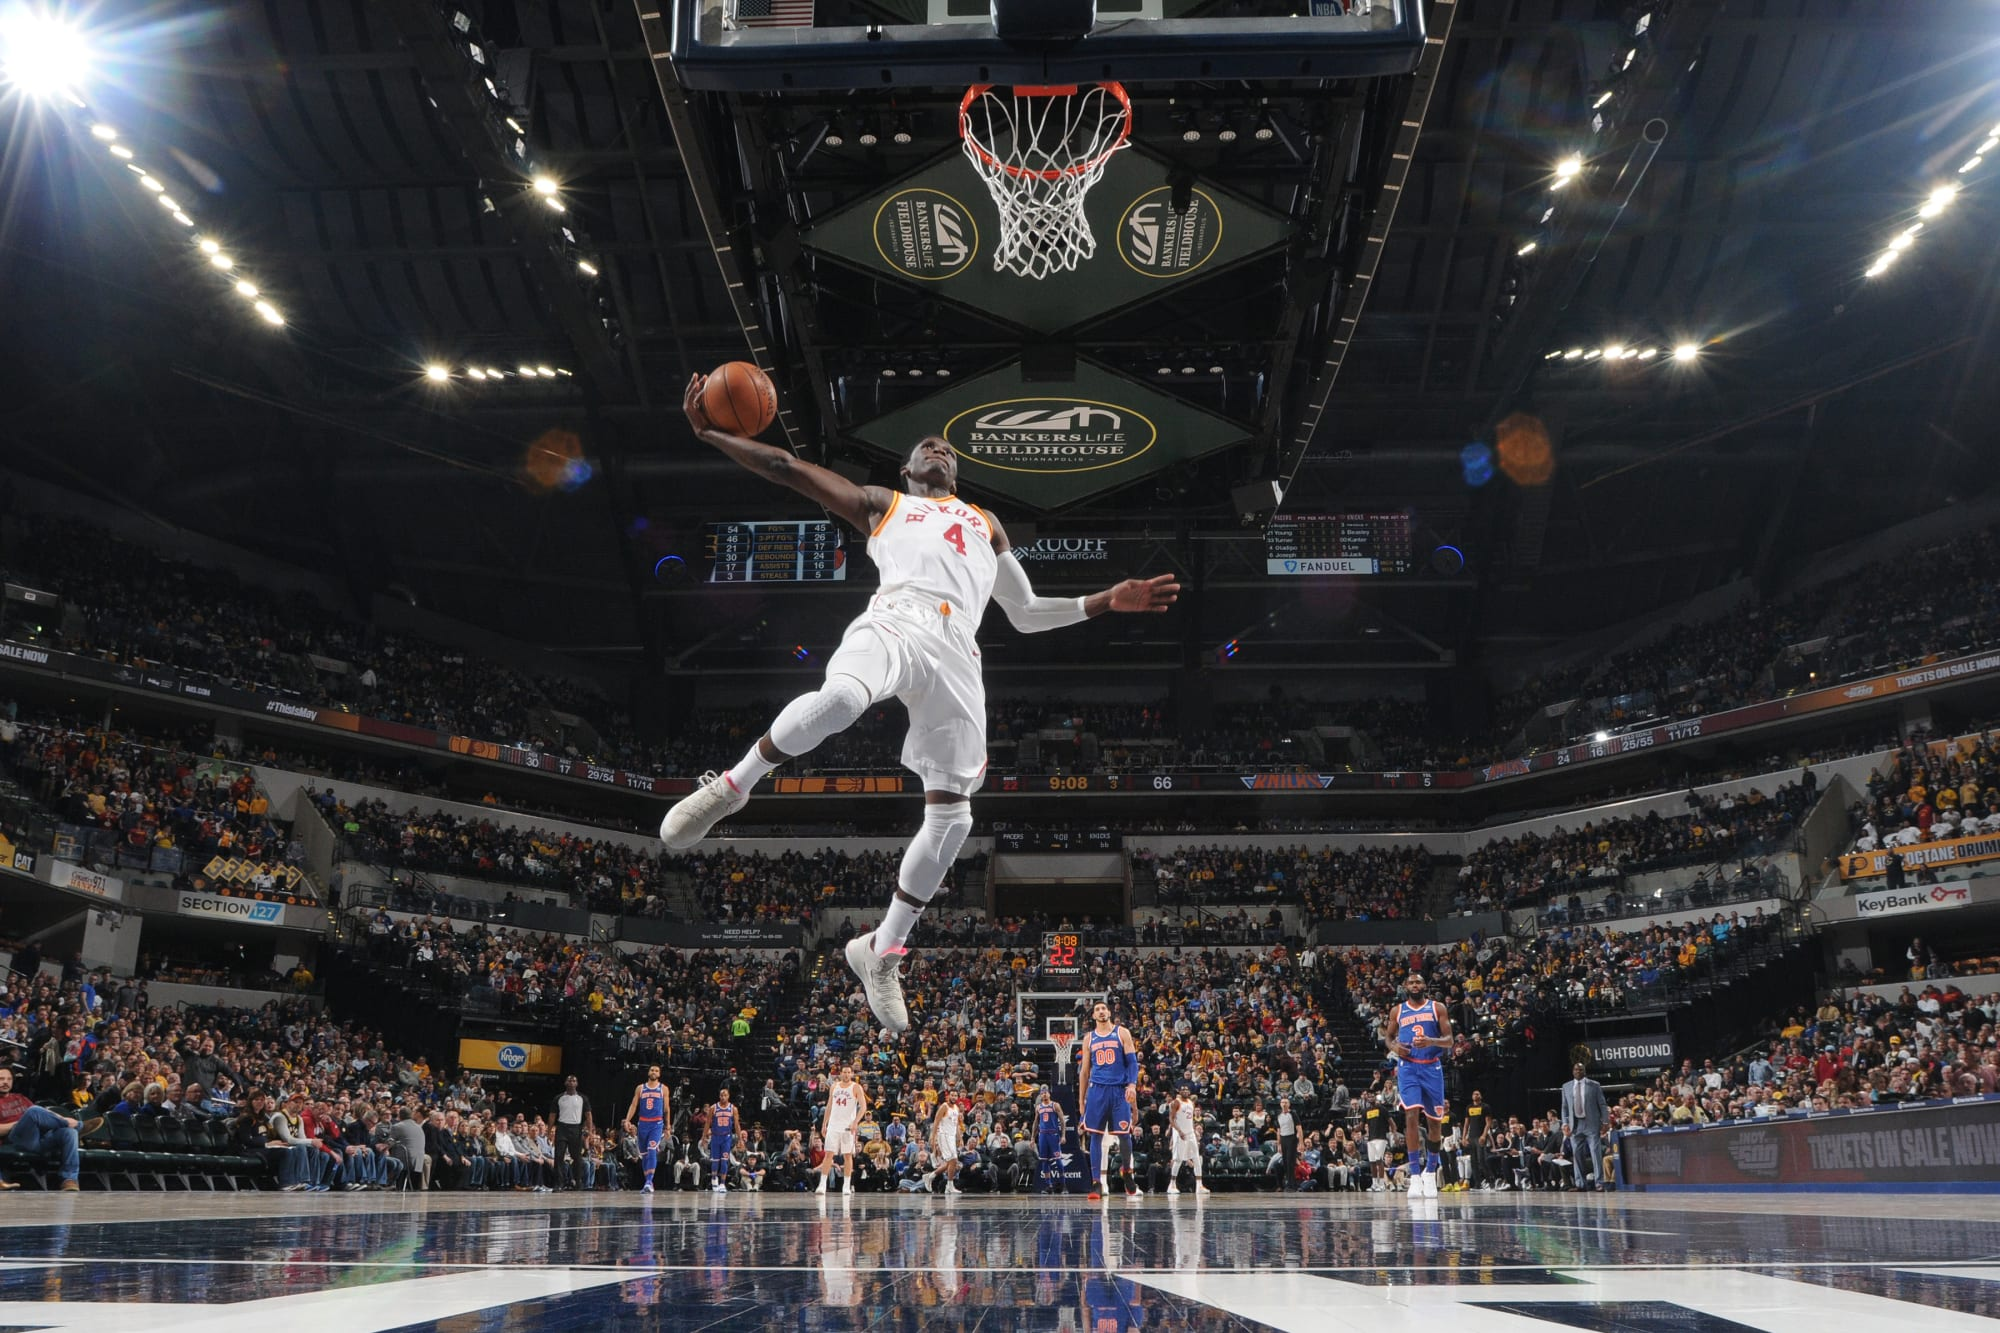 https _thunderousintentions.com_wp-content_uploads_getty-images_2018_02_917099670-new-york-knicks-v-indiana-pacers.jpg